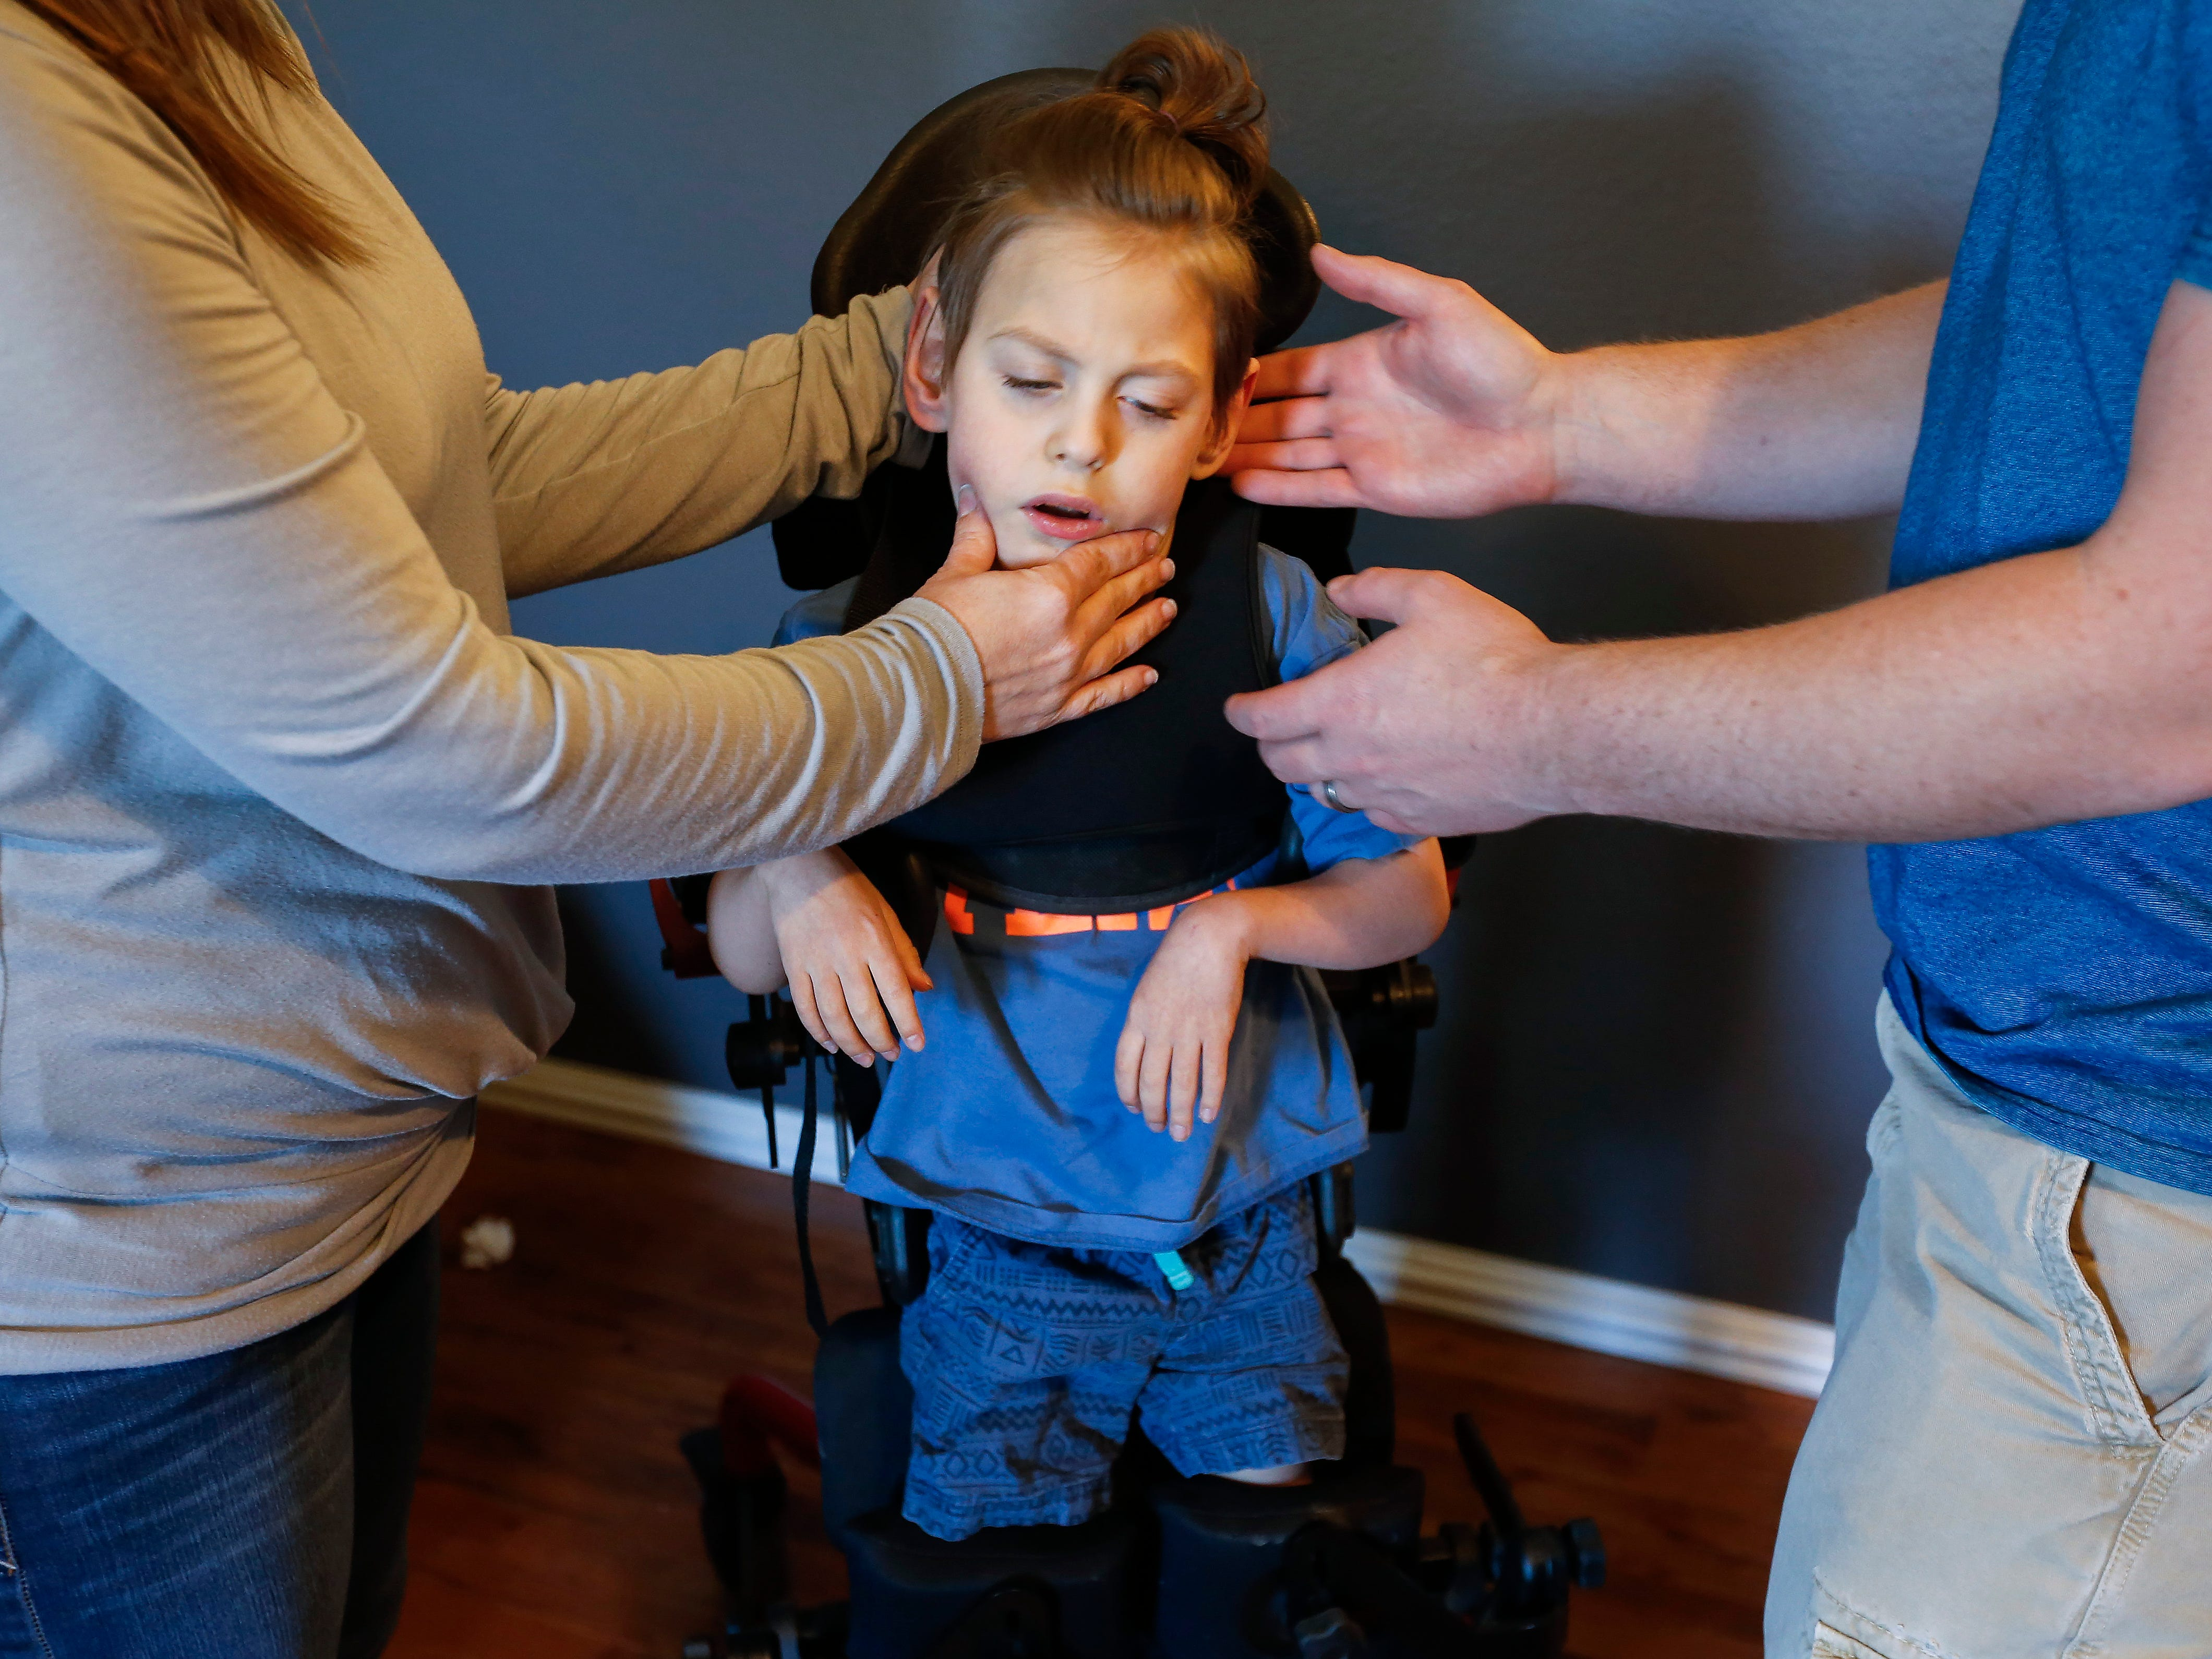 Sara Rozell, a physical therapy assistant, left, and Chris Markum adjust Ayden Markum's head during a therapy session at the Markum's home in Rogersville on Friday, April 27, 2018.